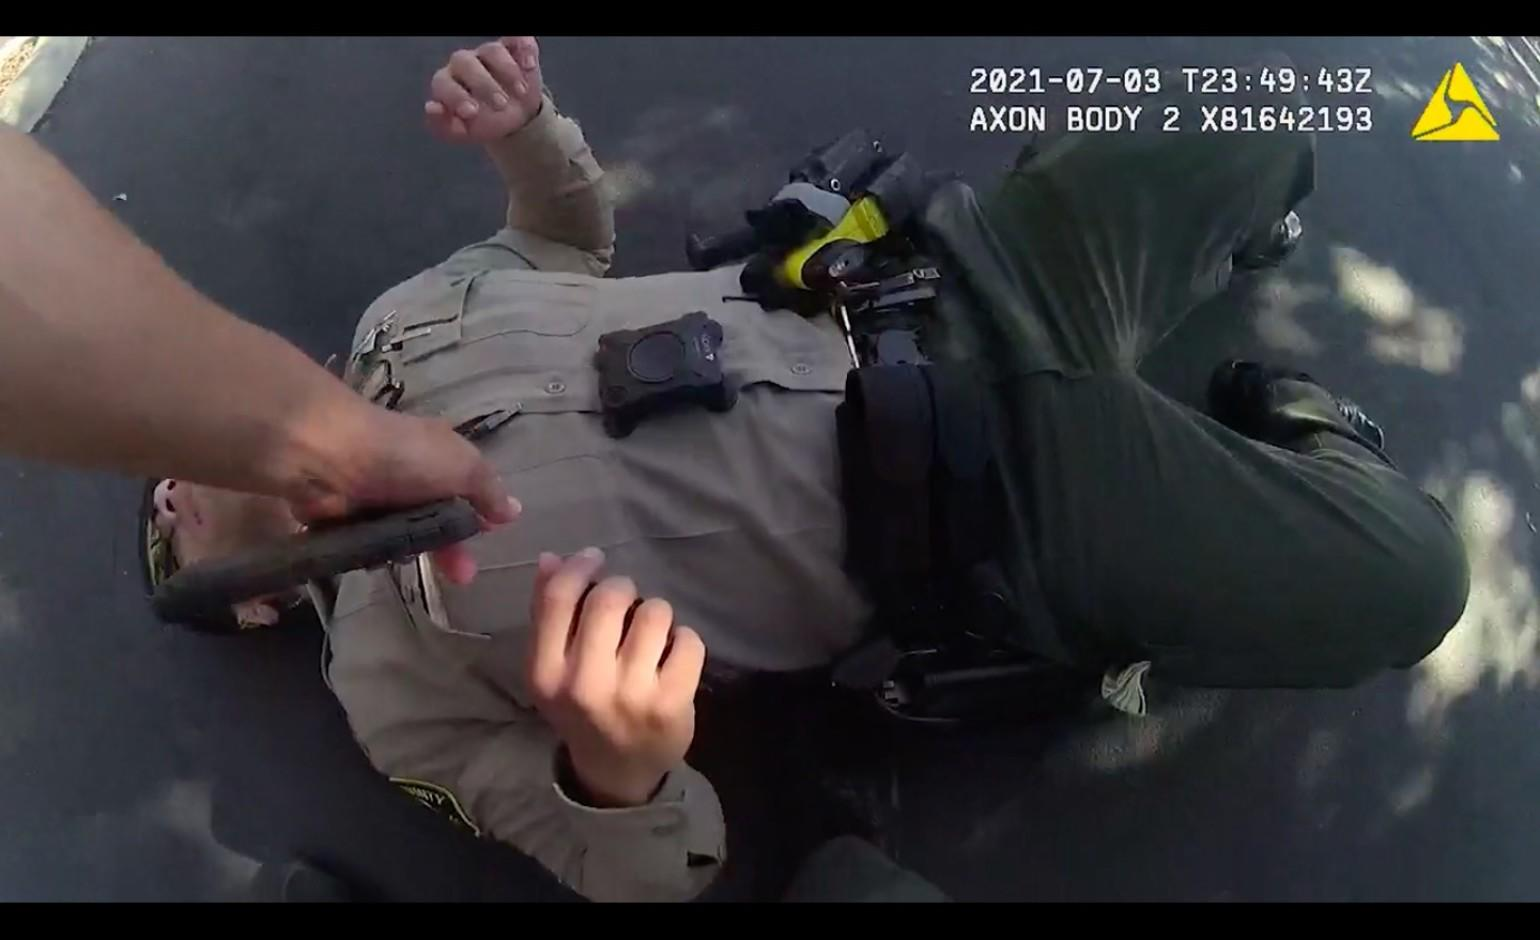 San Diego sheriff's department faces blowback over fentanyl video